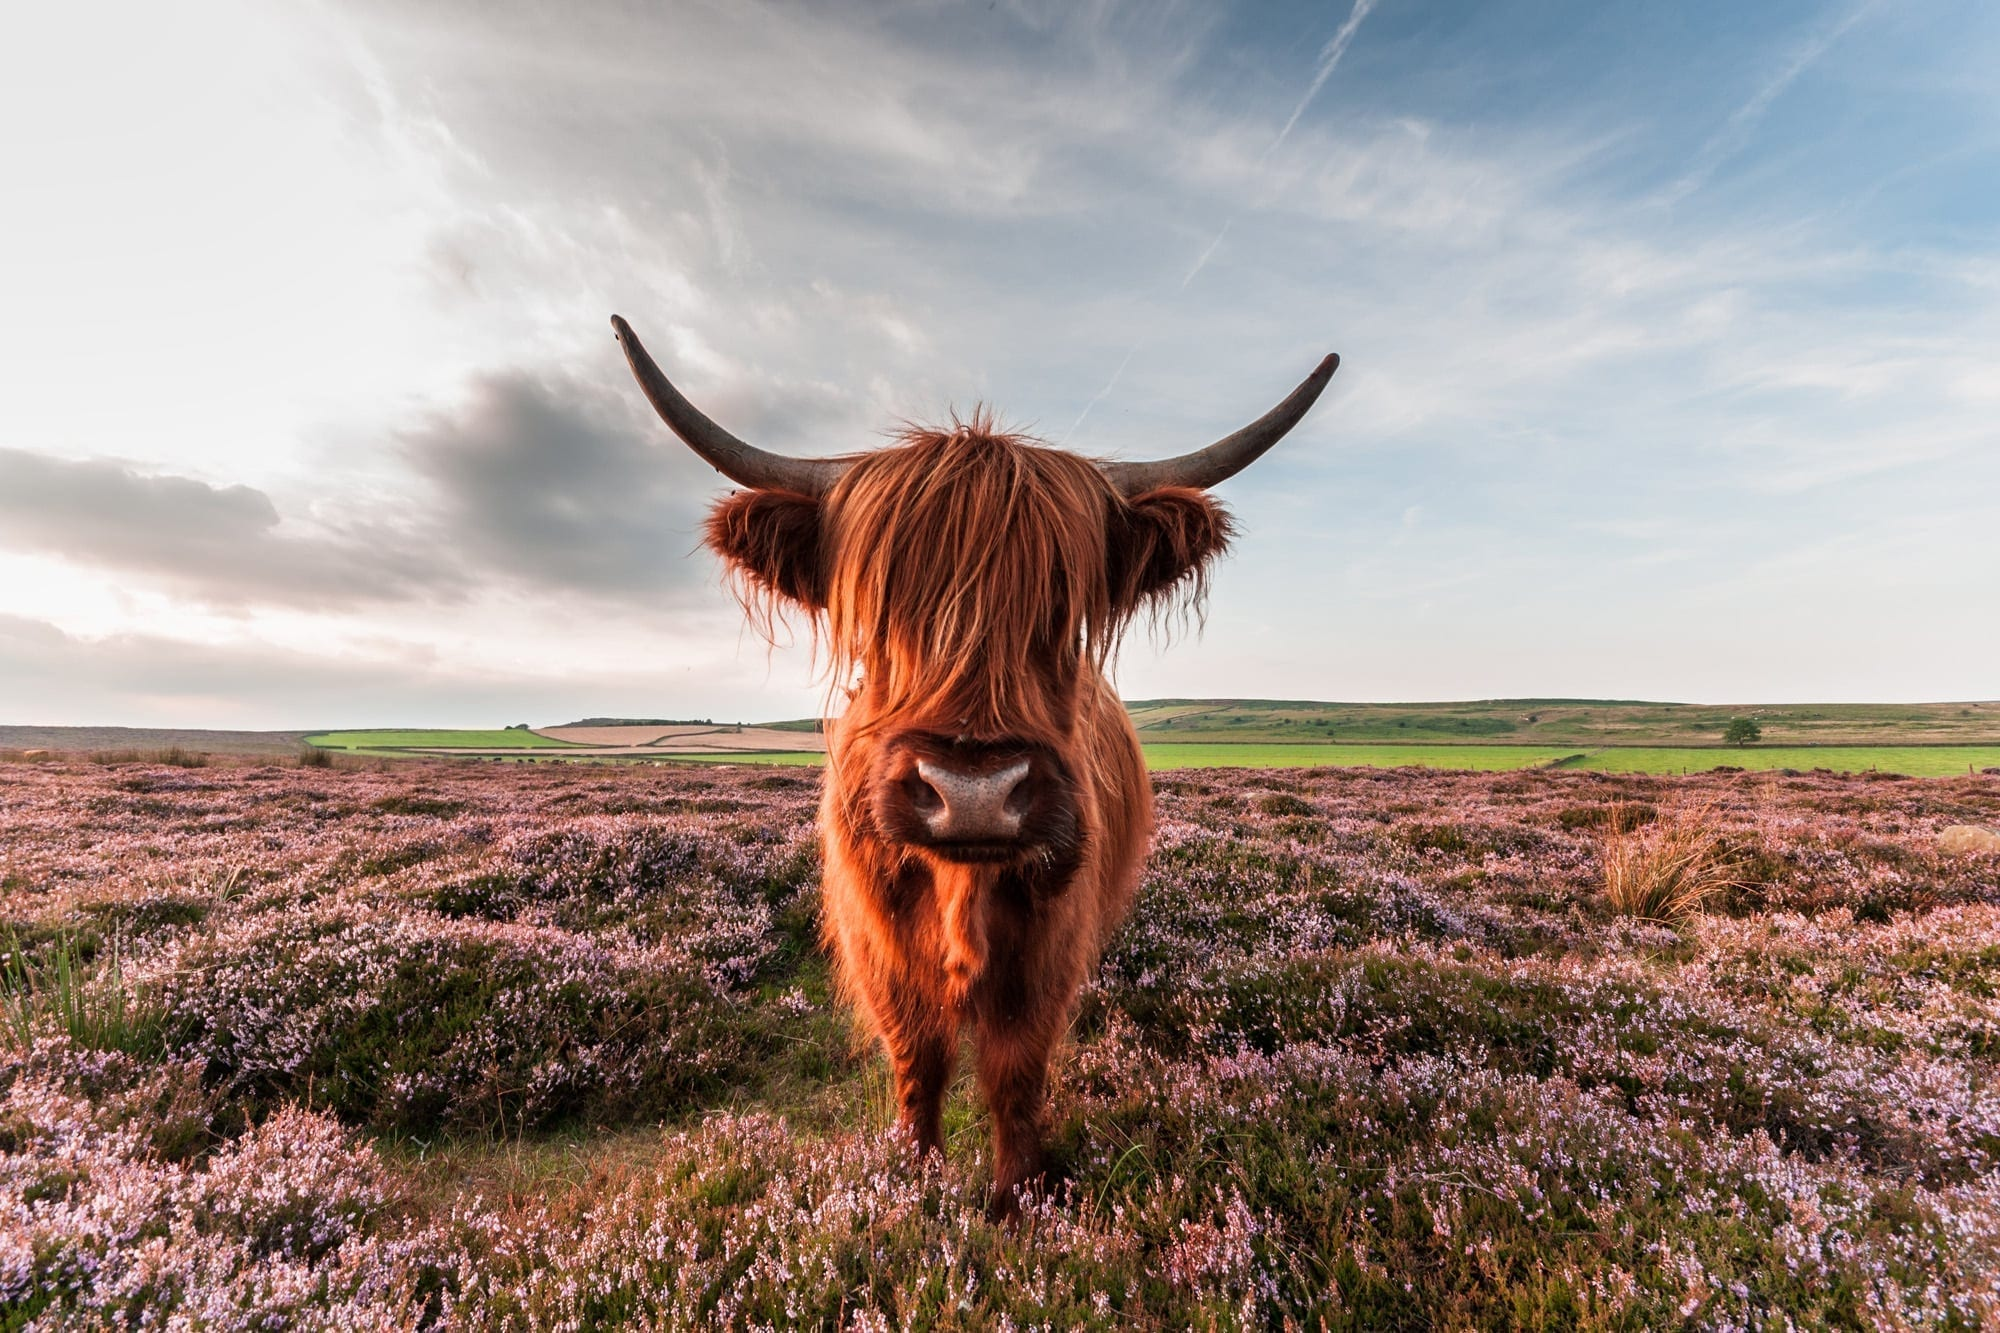 Are You Looking At Me? - Baslow Highland Cow - Peak District Photography